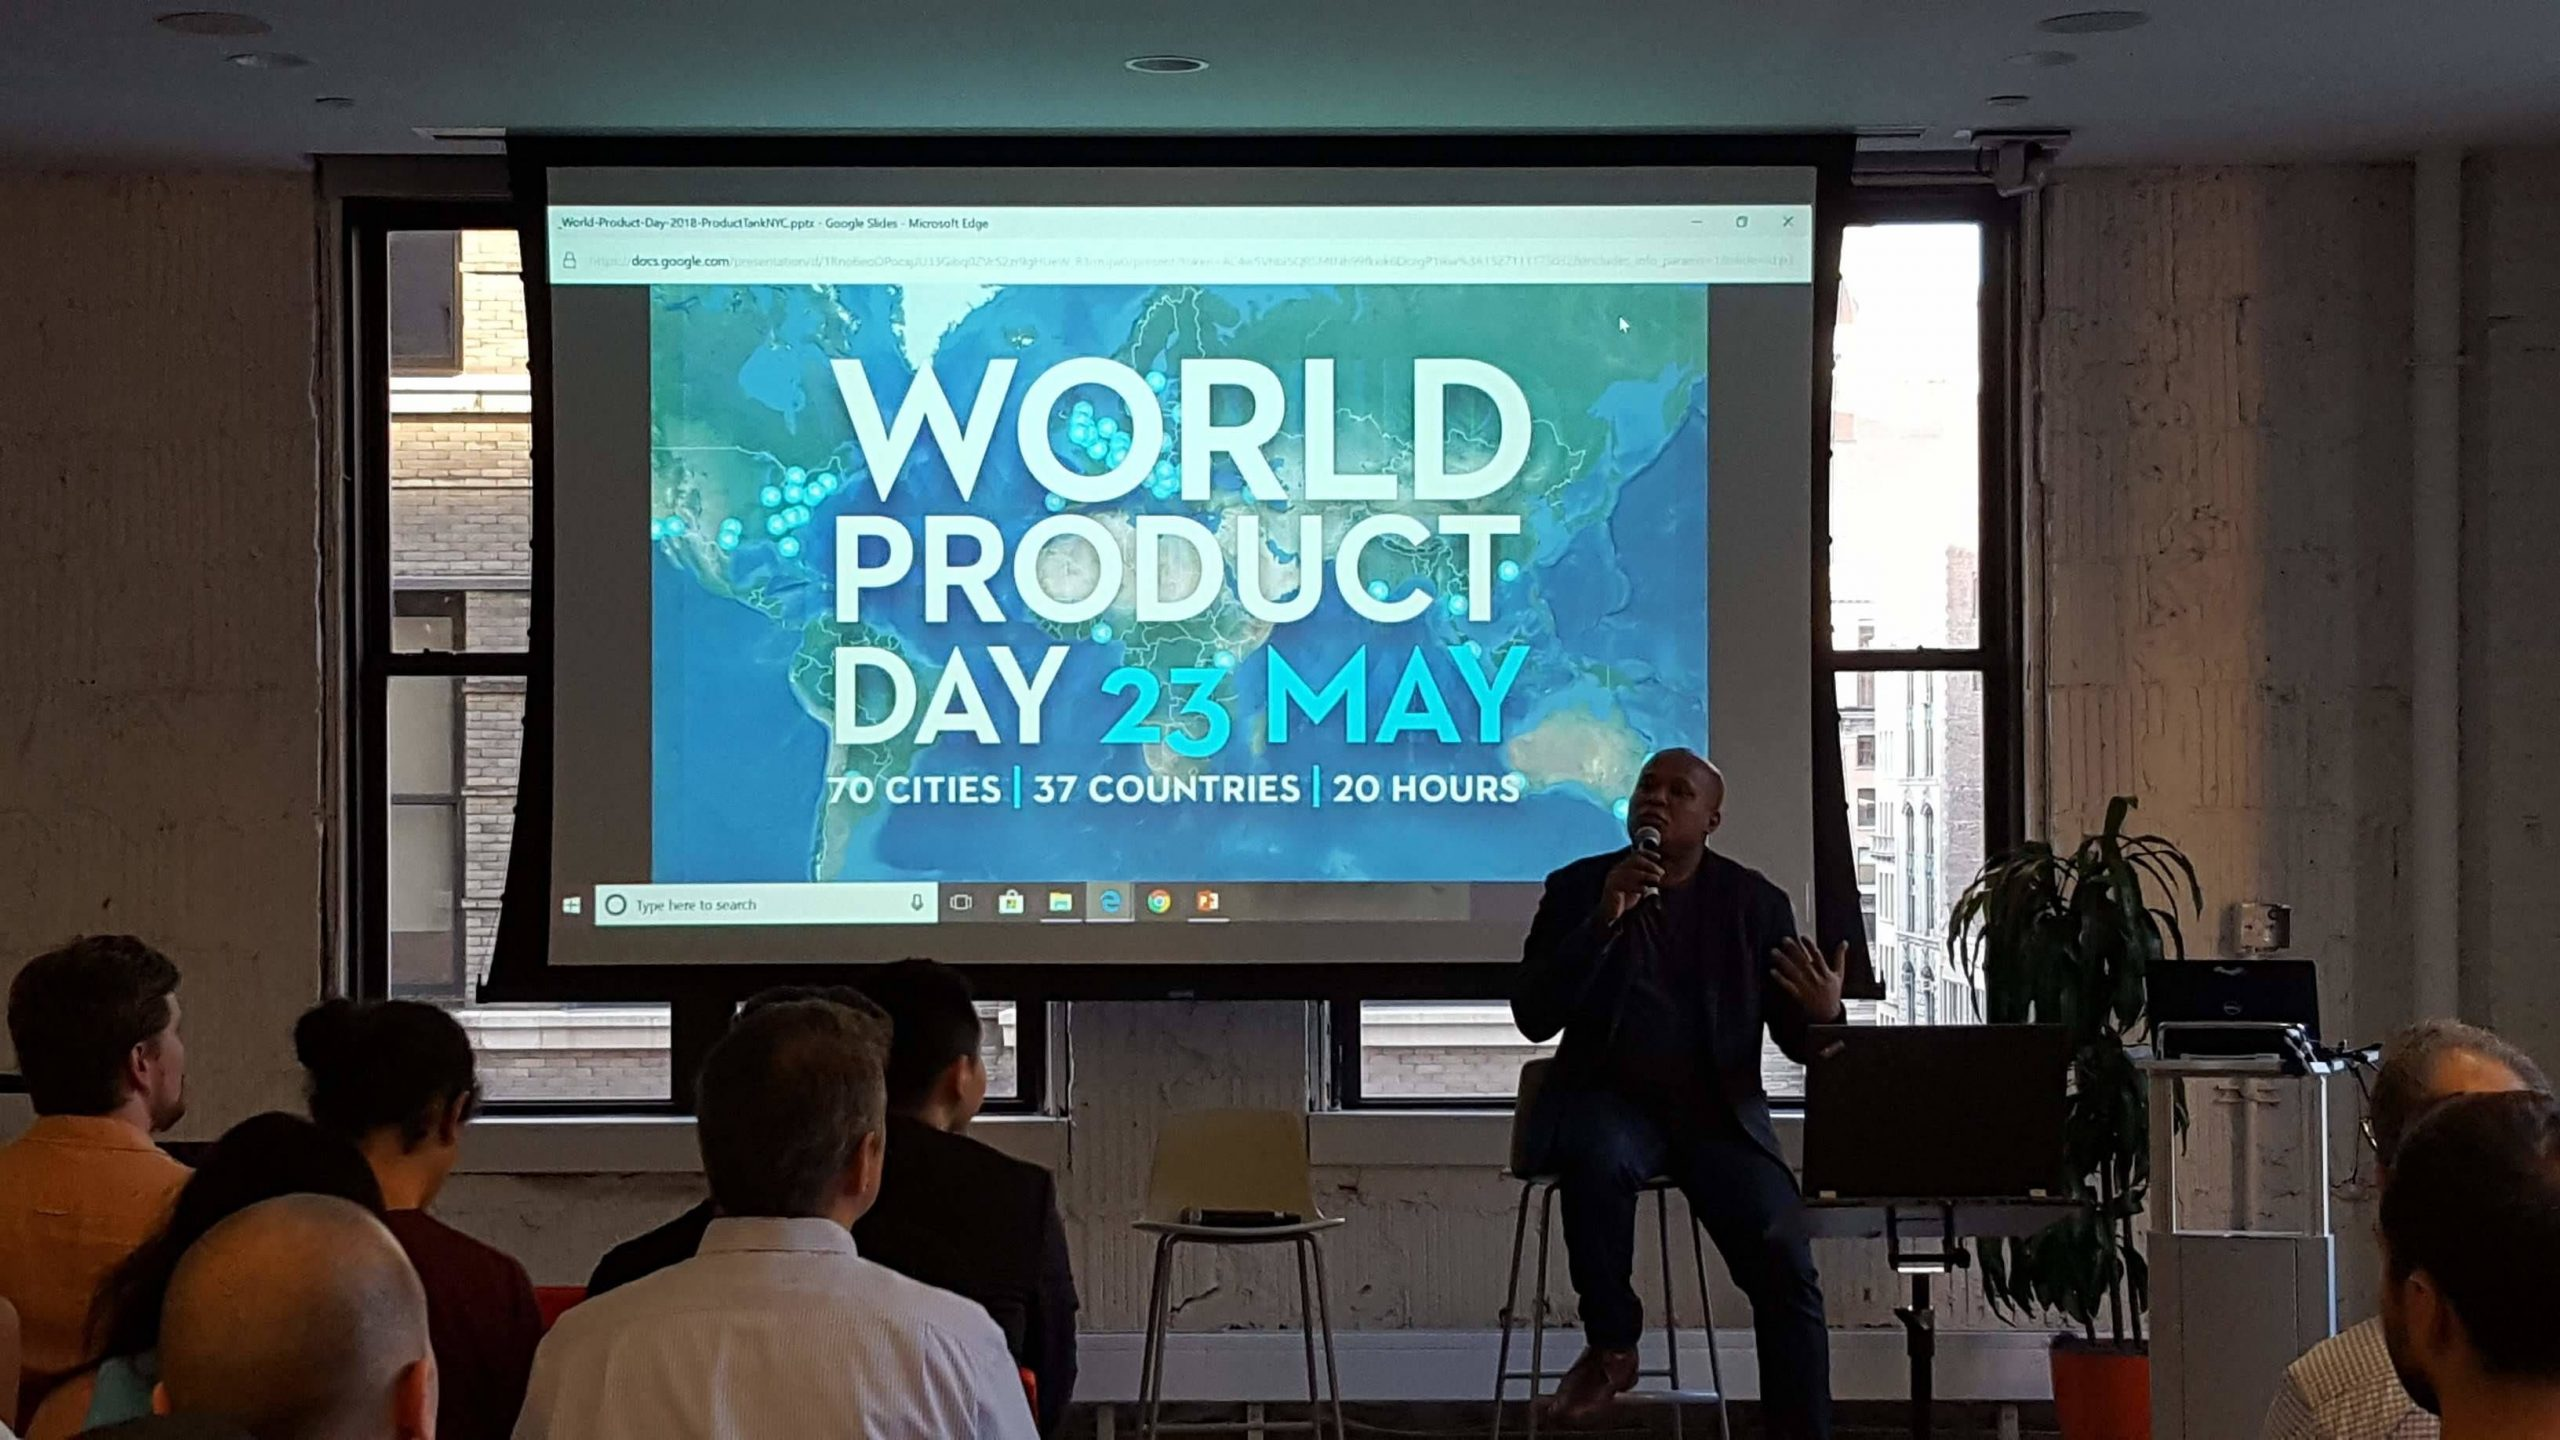 Photo of man speaking at World Product Day